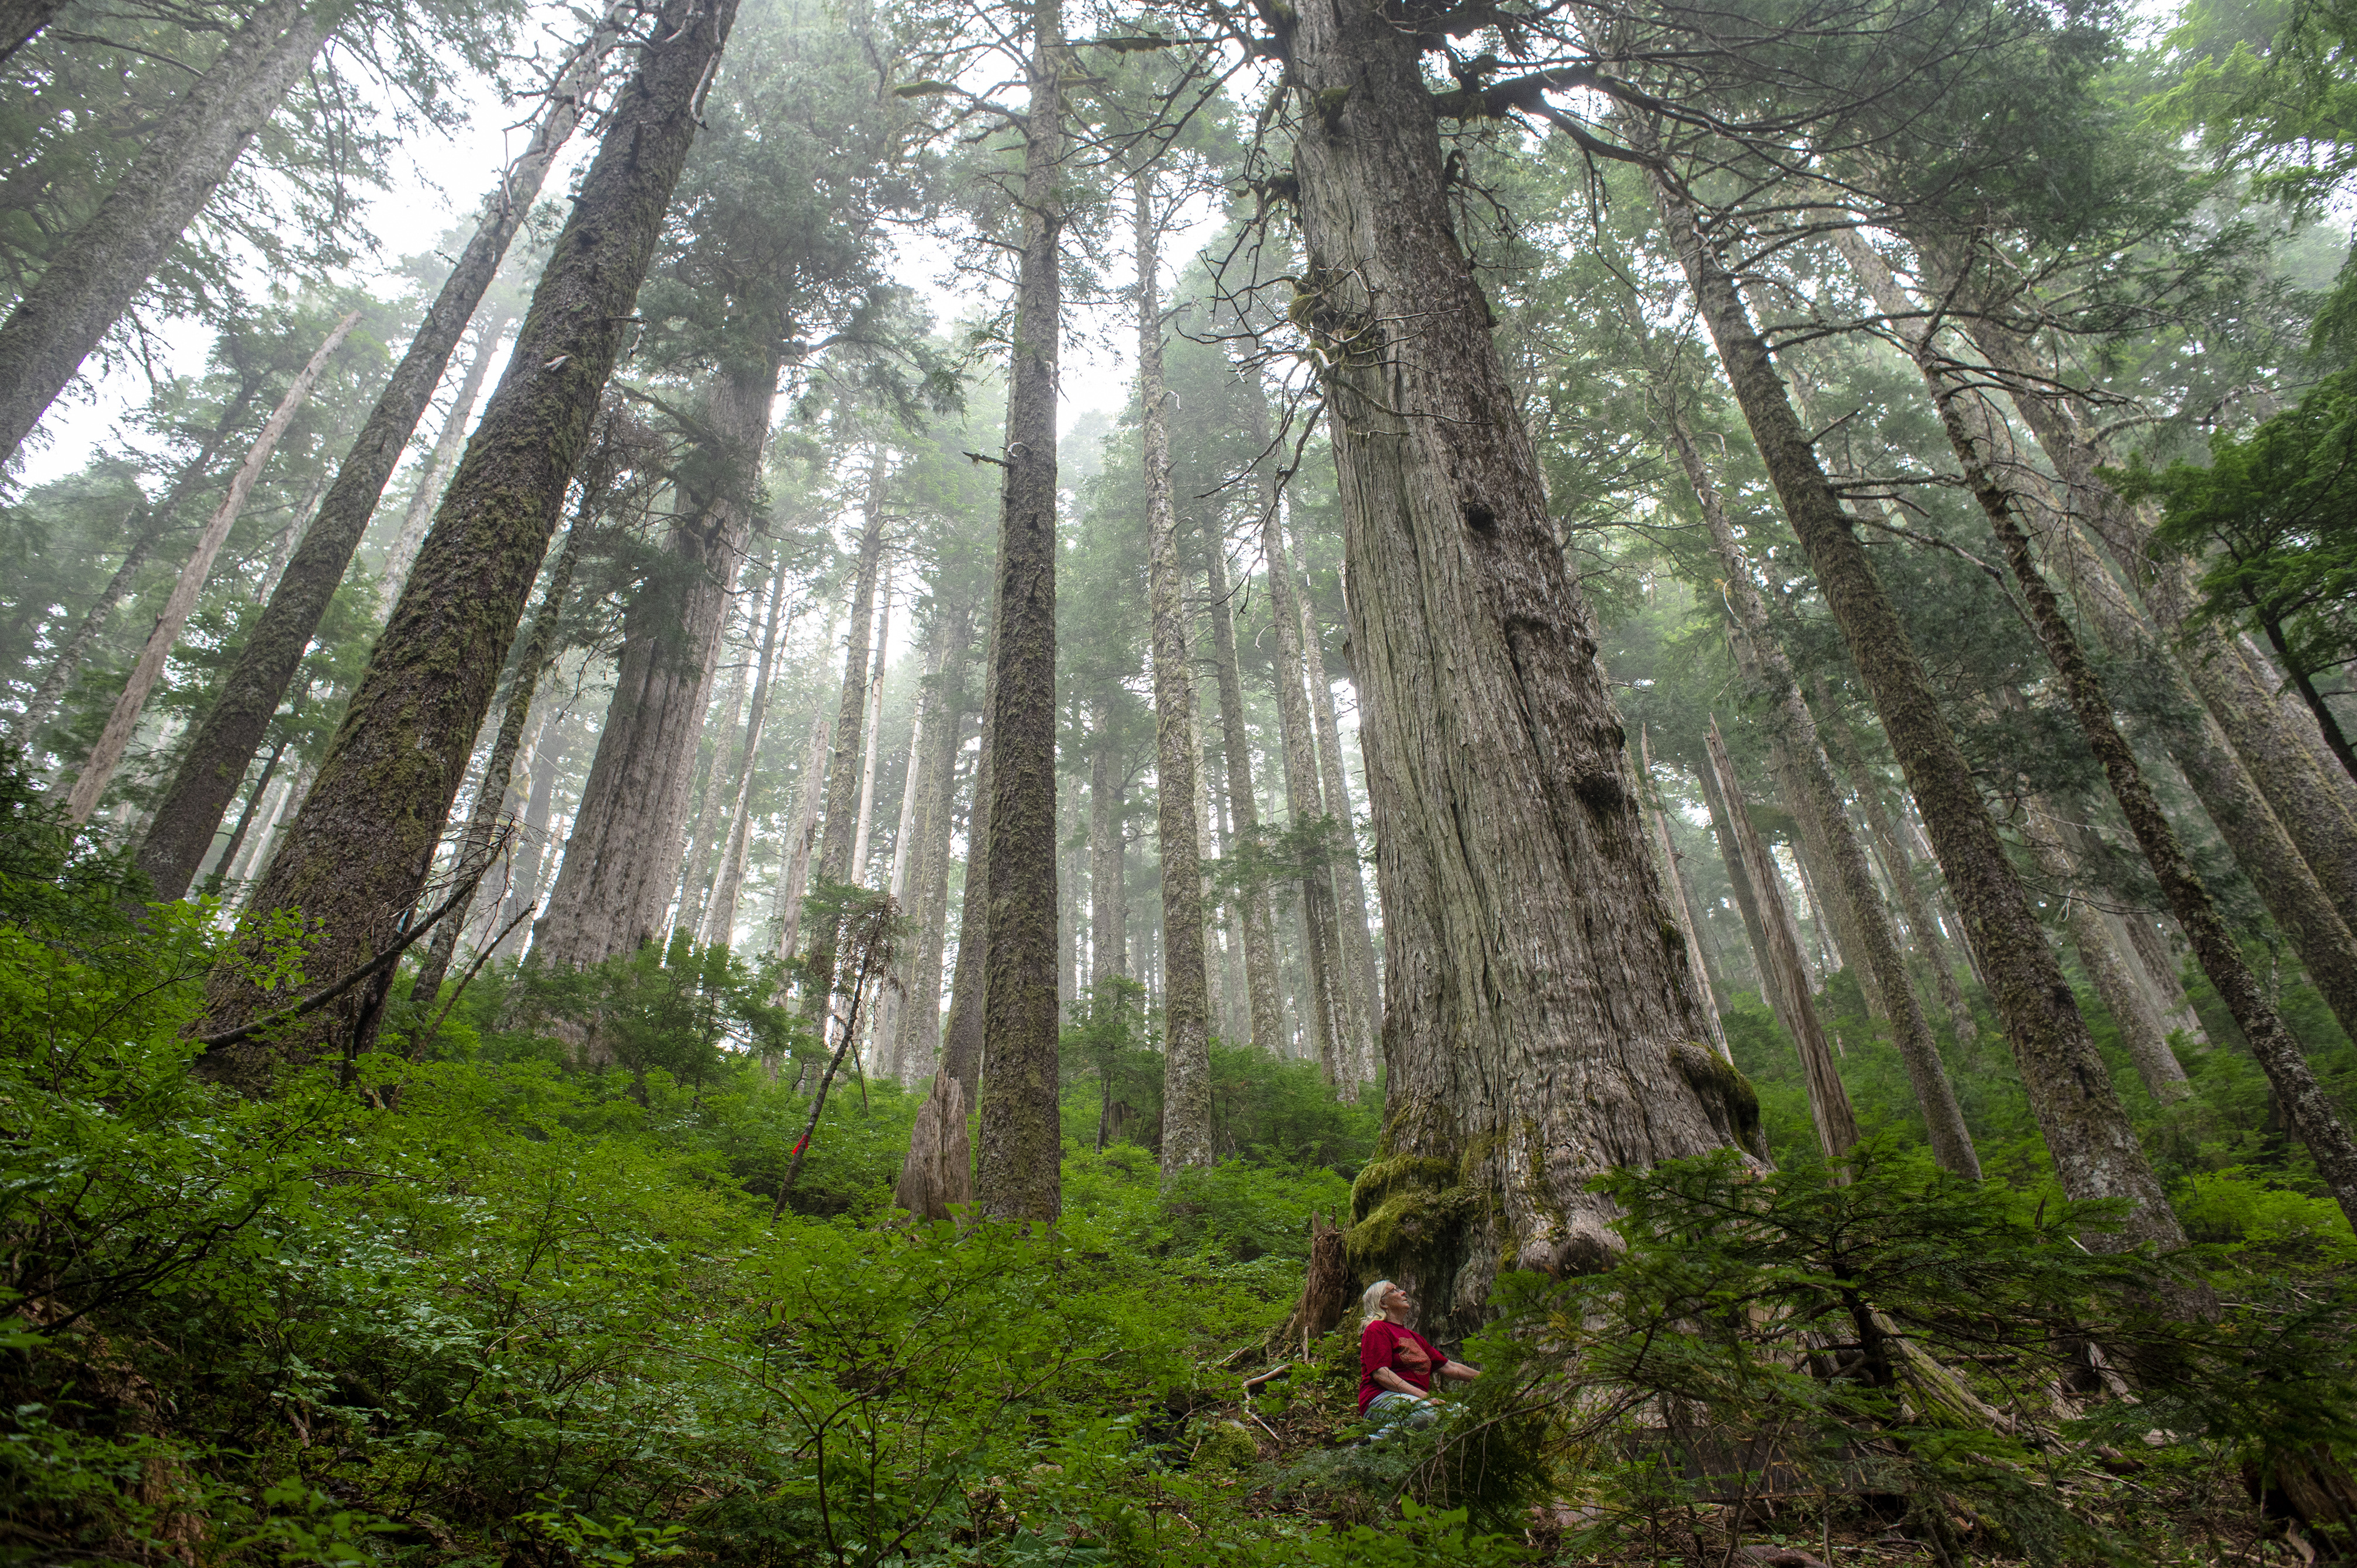 Despite being at a high elevation, the yellow cedar trees near the headwaters of the Fairy Creek watershed grow to immense size. (Kieran Oudshoorn/CBC)